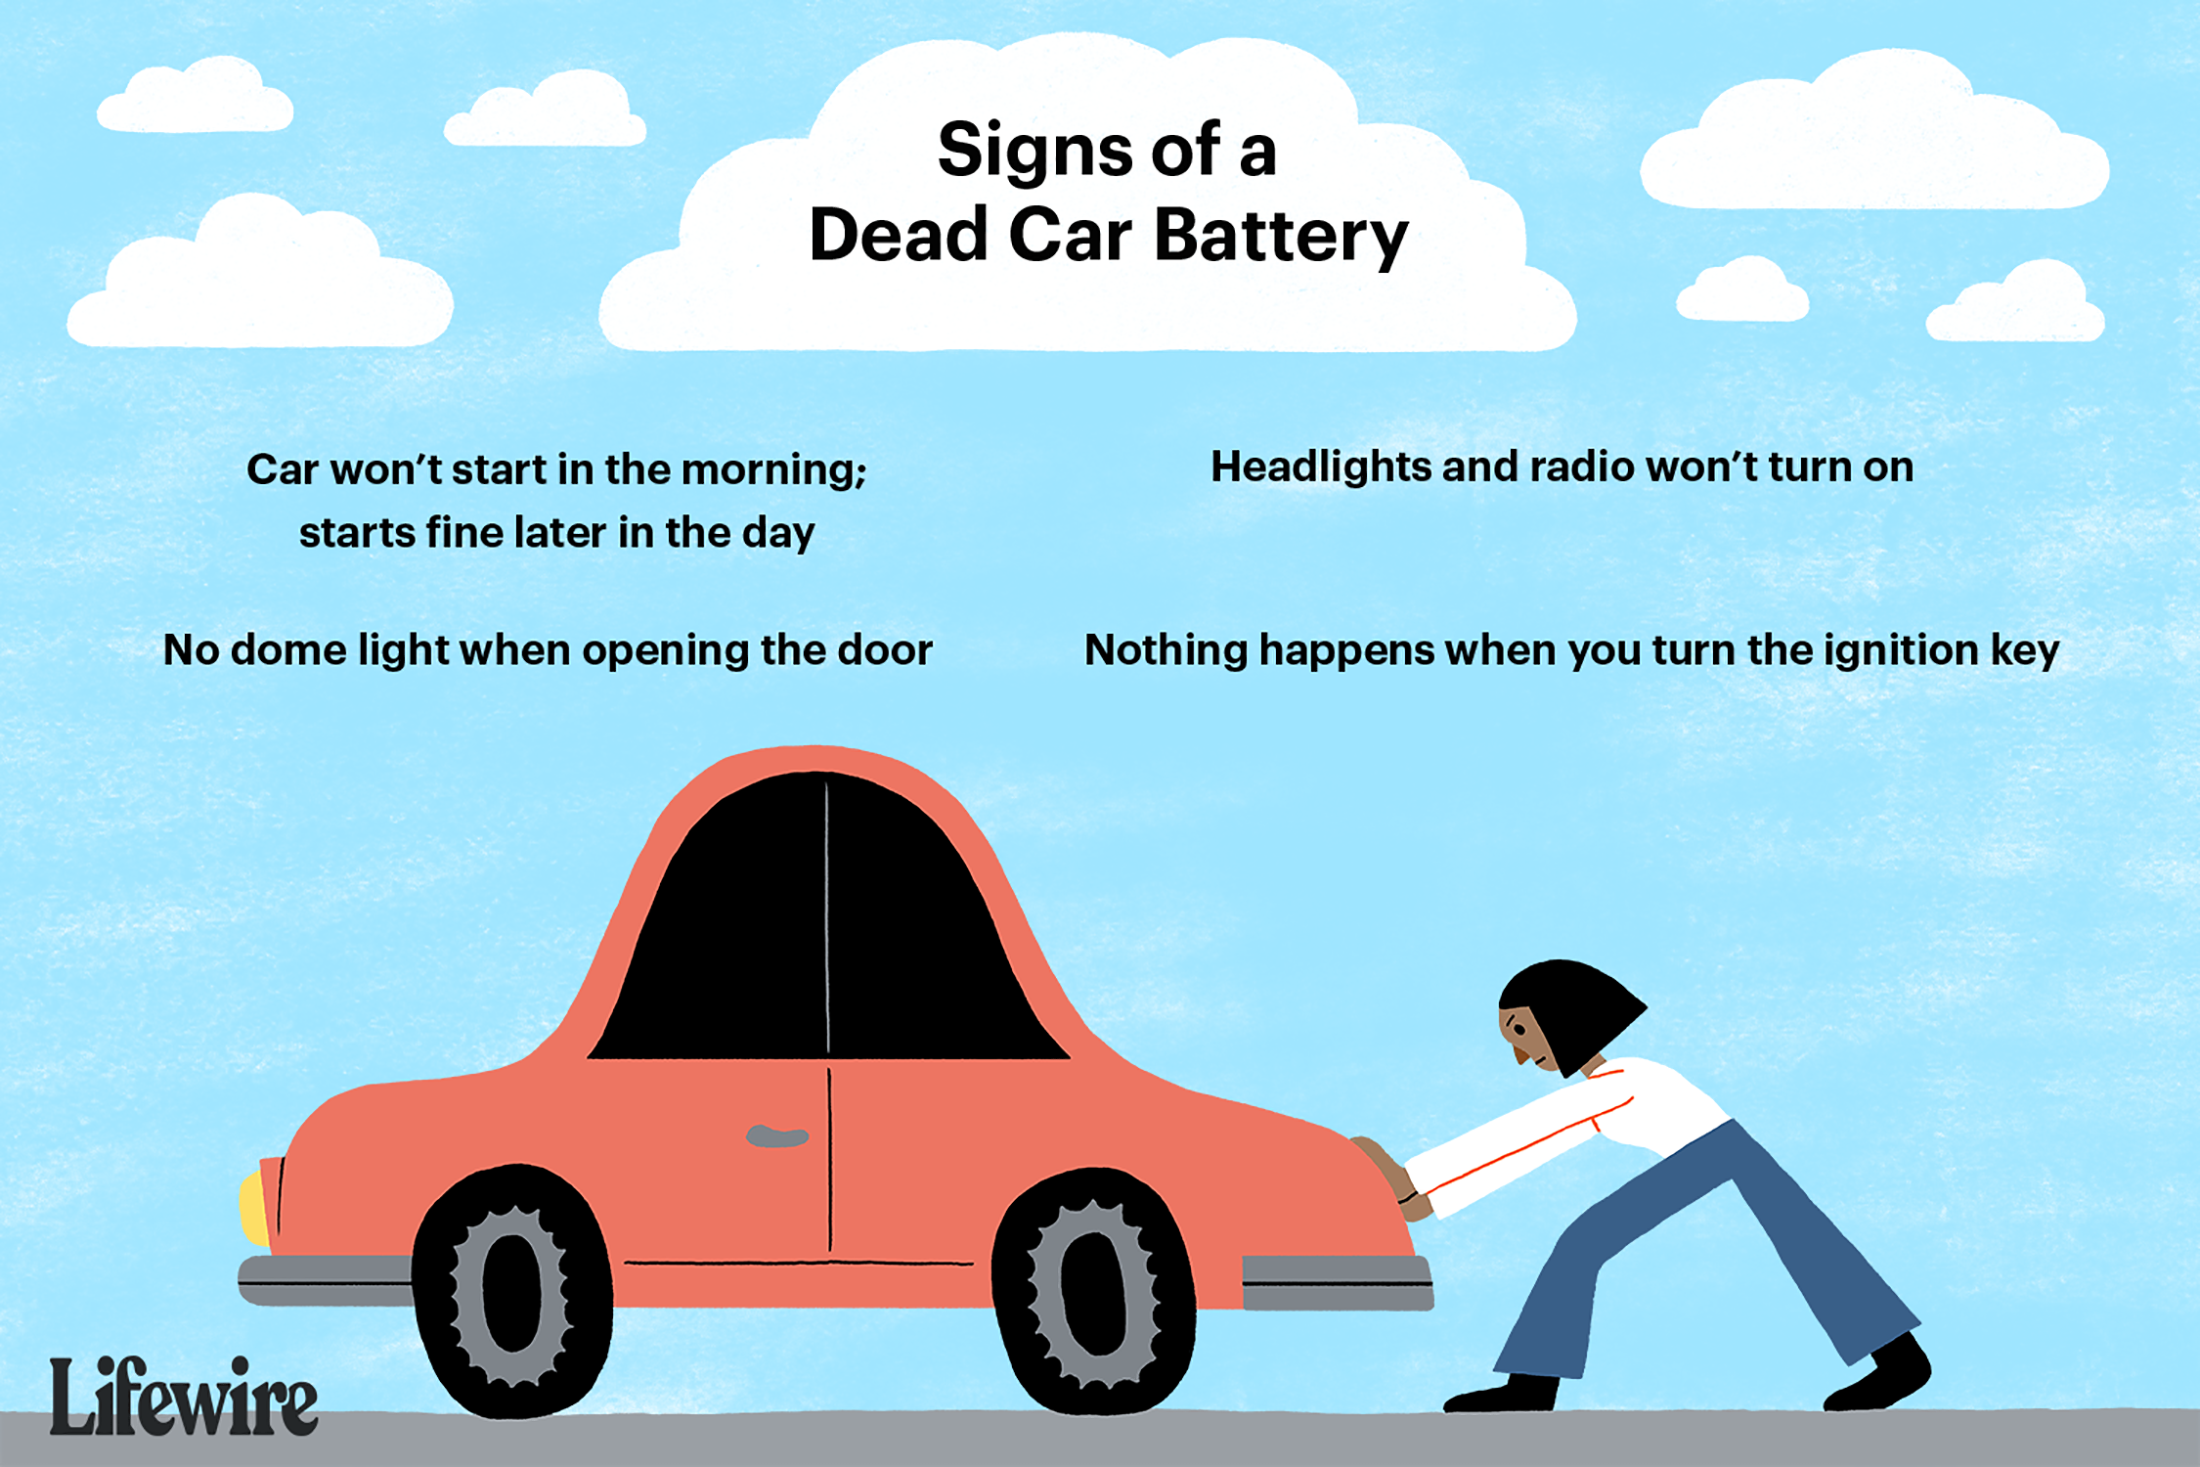 An illustration of some of the signs of a dead car battery.